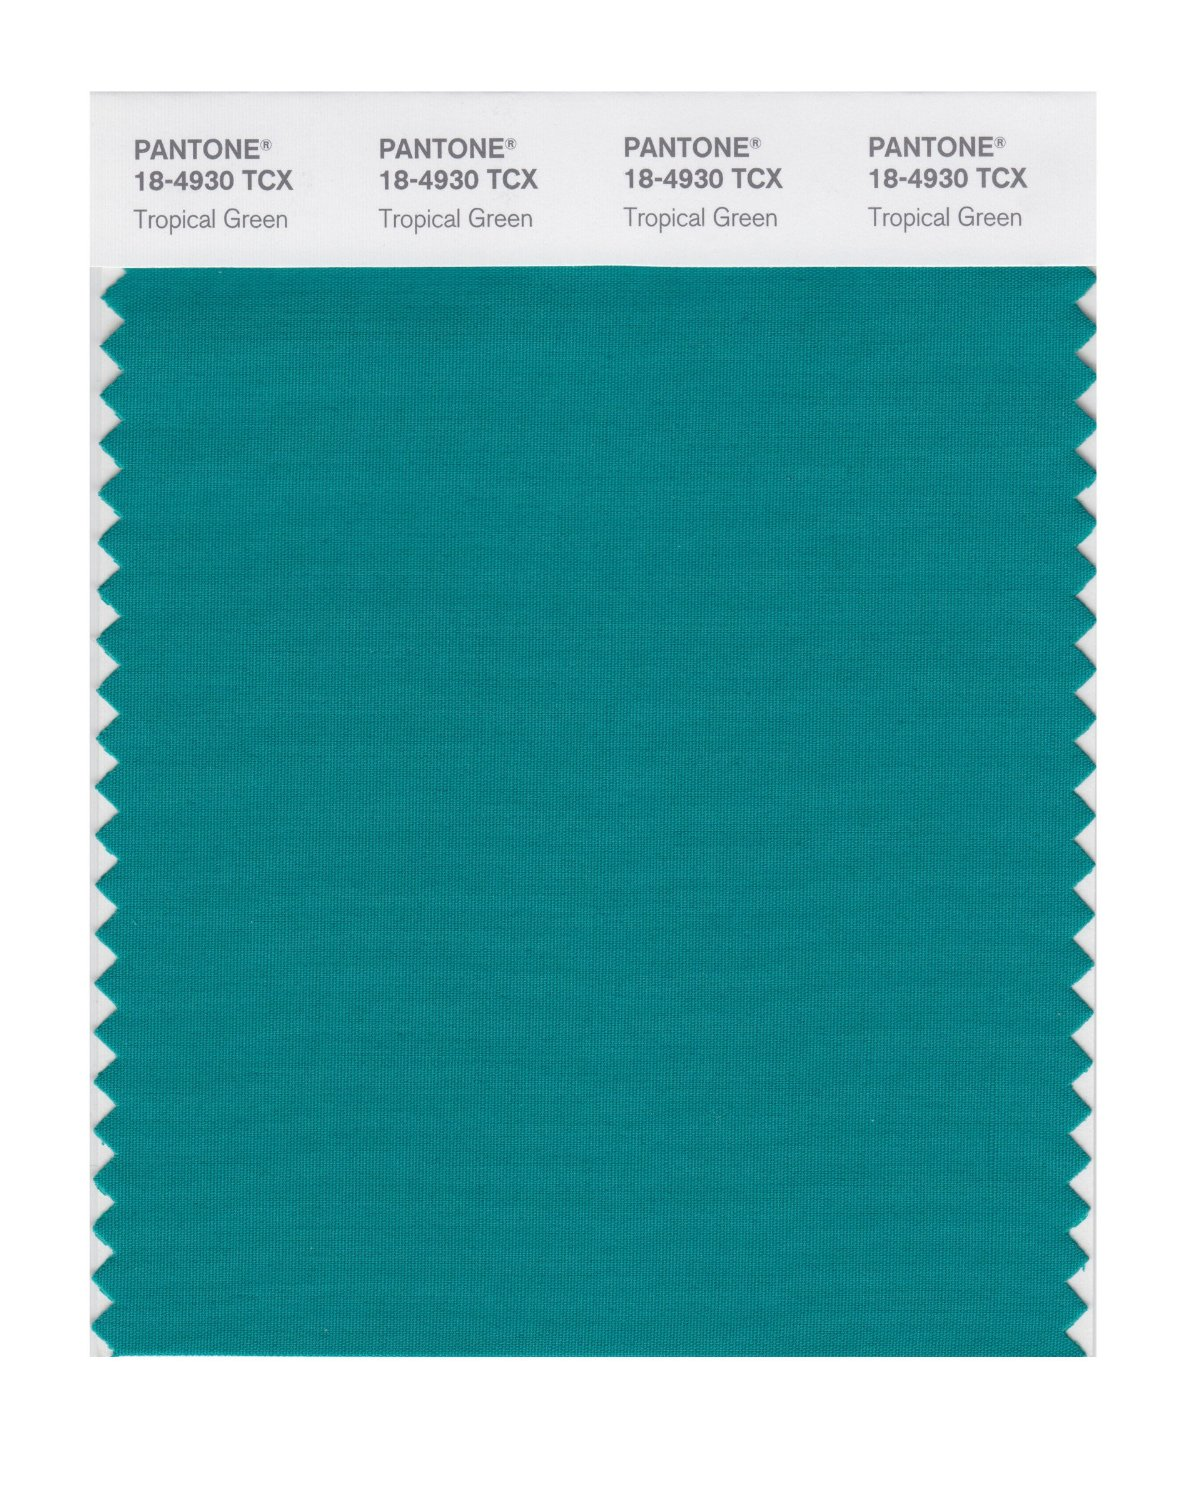 Pantone Smart Swatch 18-4930 Tropical Green